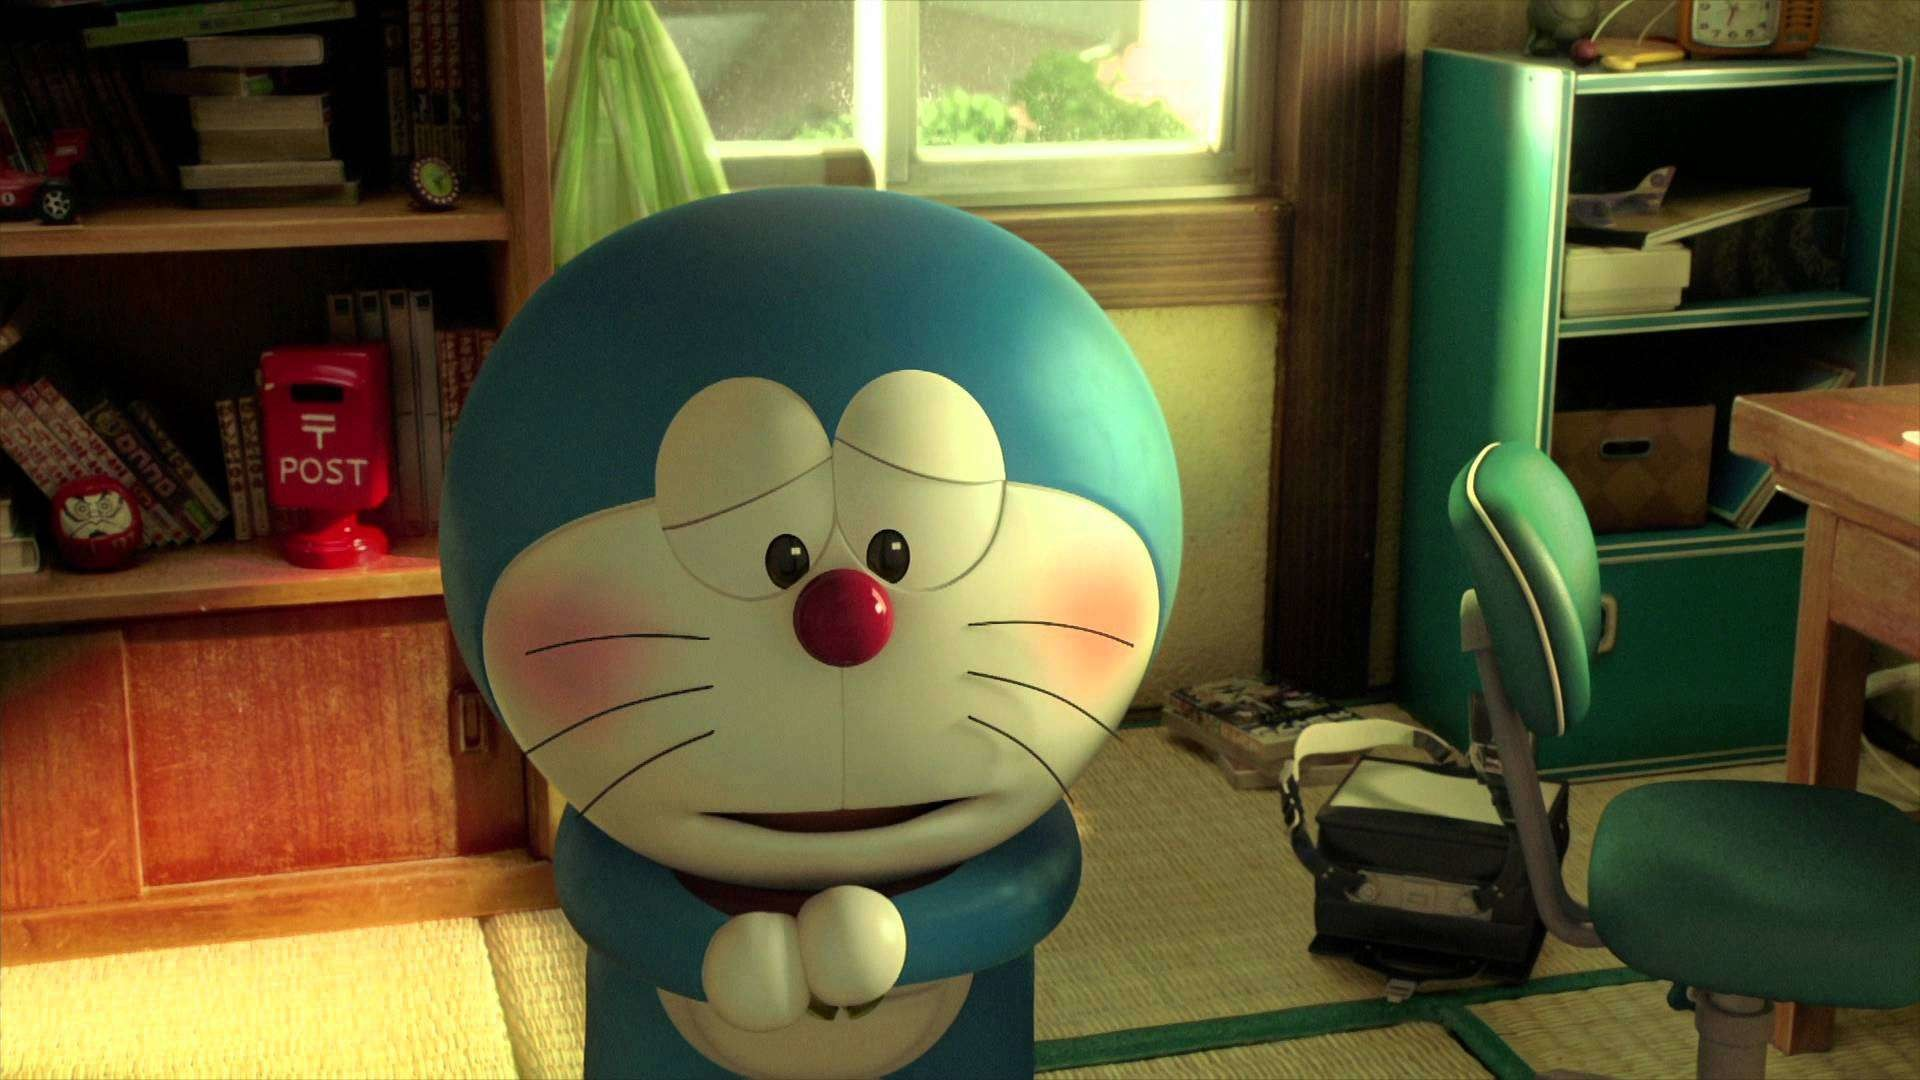 1920x1080 Doraemon 3D 1080p Widescreen Background Wallpapers